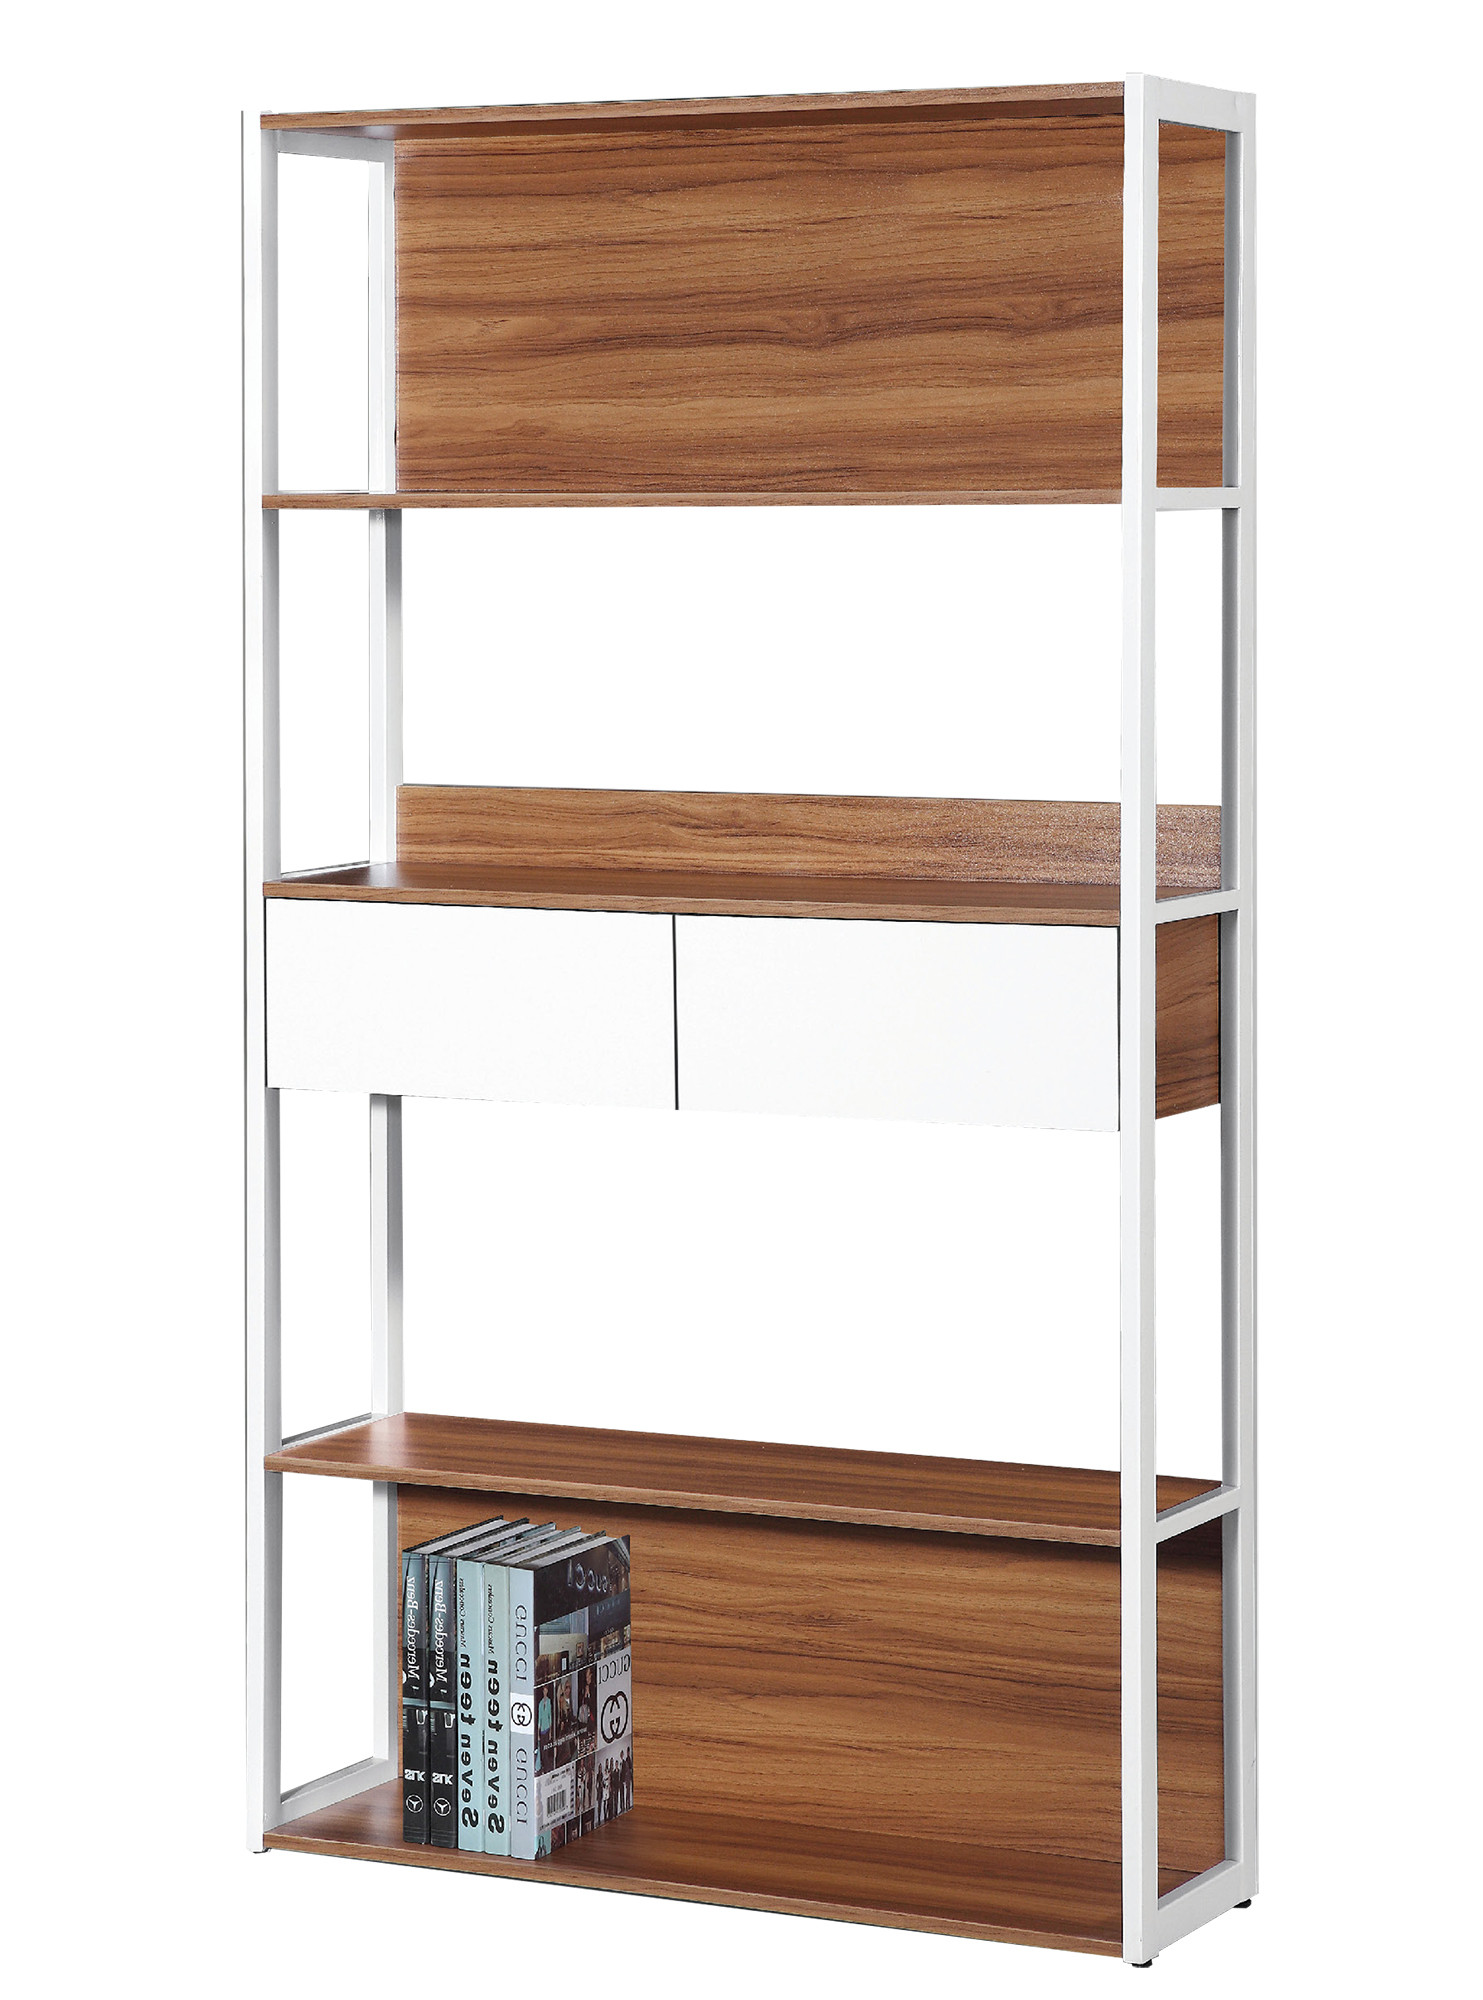 Wekas Display Cabinet Display Cabinets Shelves Display Storage Cabinets Living Room